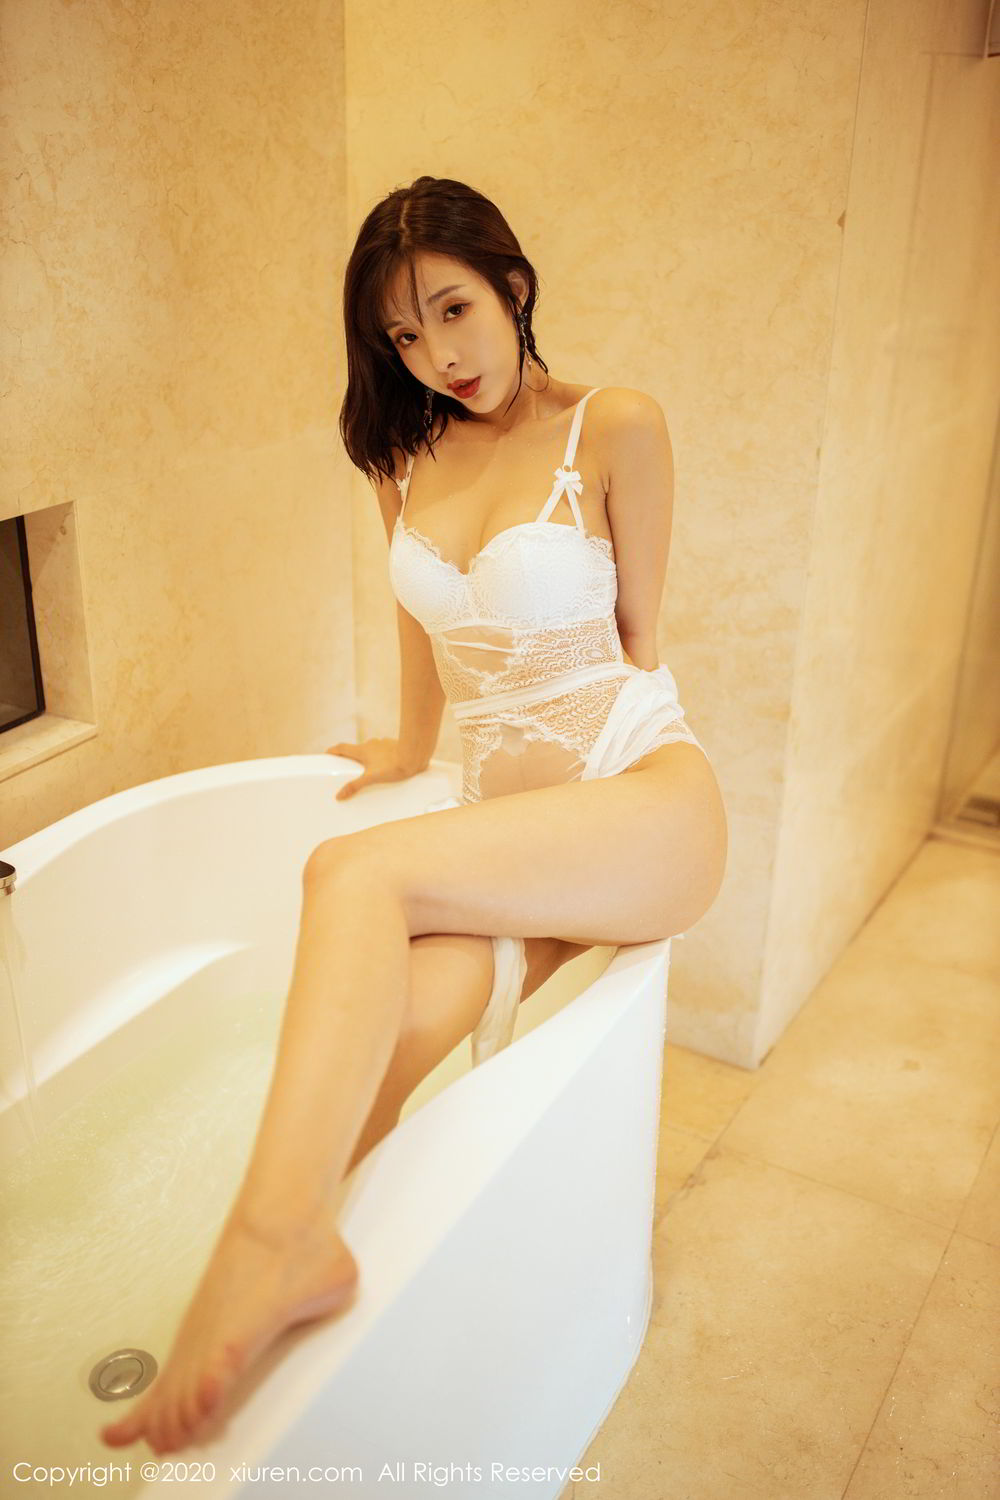 [XiuRen] Vol.2158 Chen Xiao Miao 38P, Bathroom, Chen Xiao Miao, Tall, Wet, Xiuren